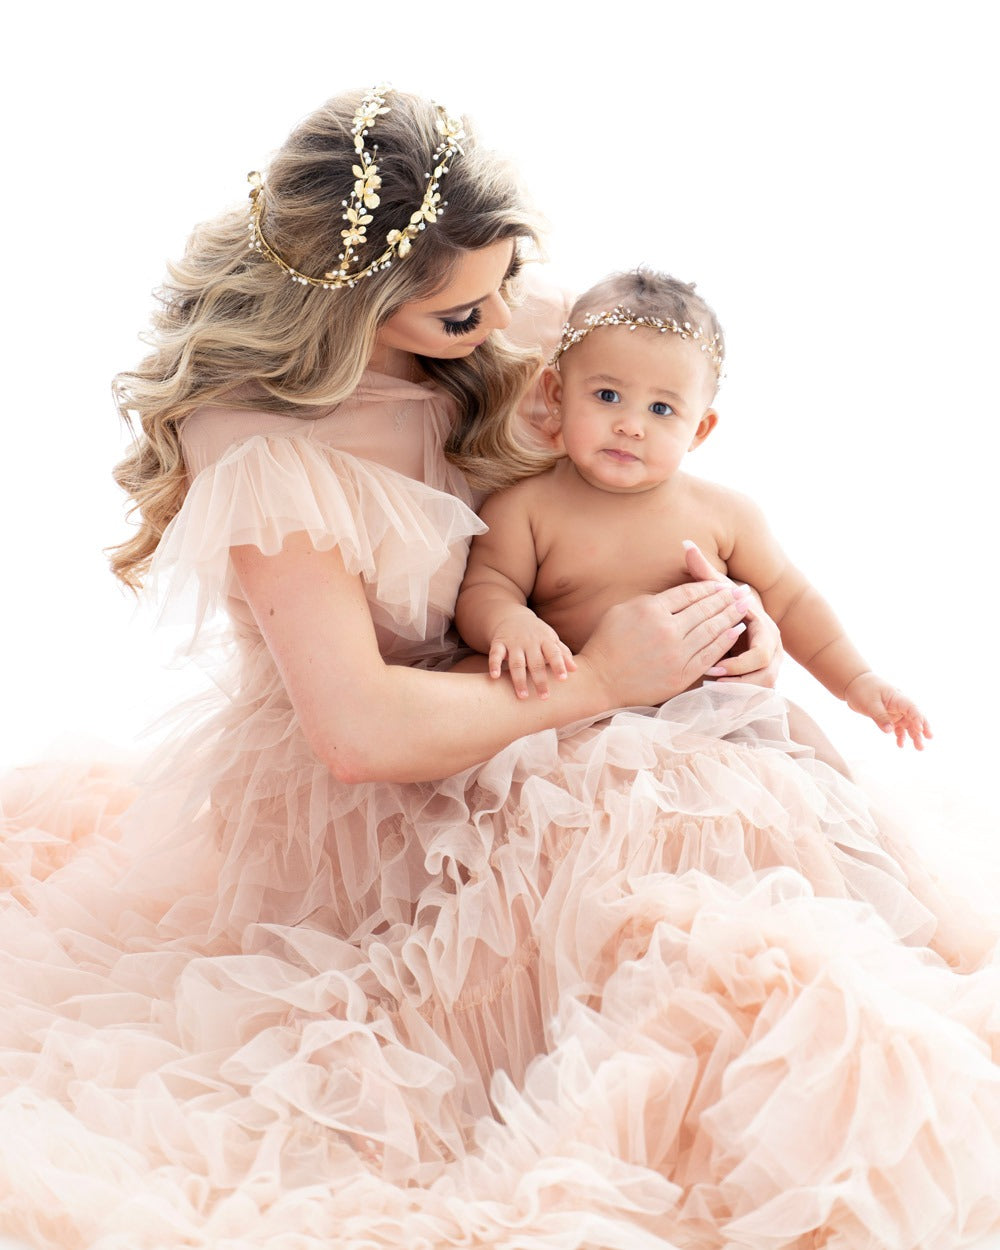 mother holding baby and wearing christie lauren headpeices